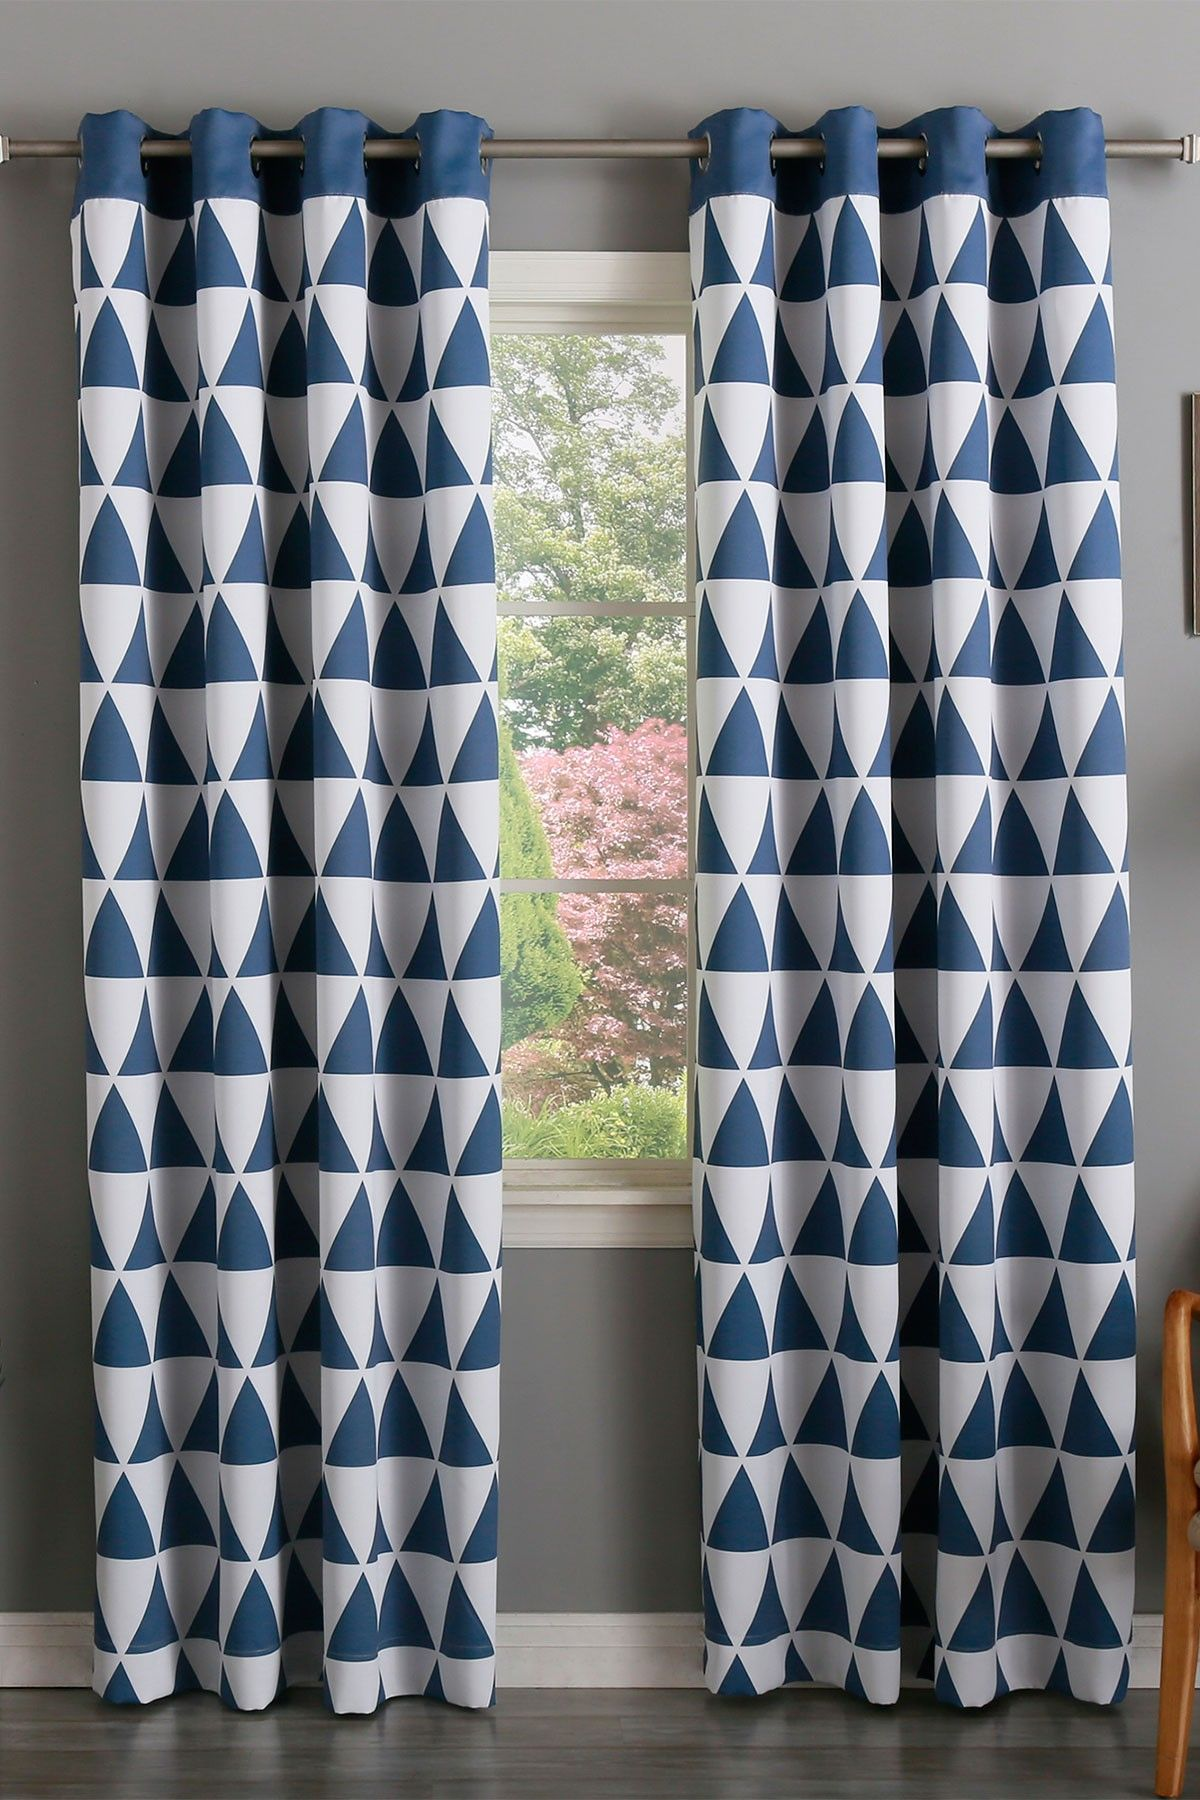 Geometric Patterned Curtains Geometric Triangle Printed Room Darkening Grommet Curtains Set